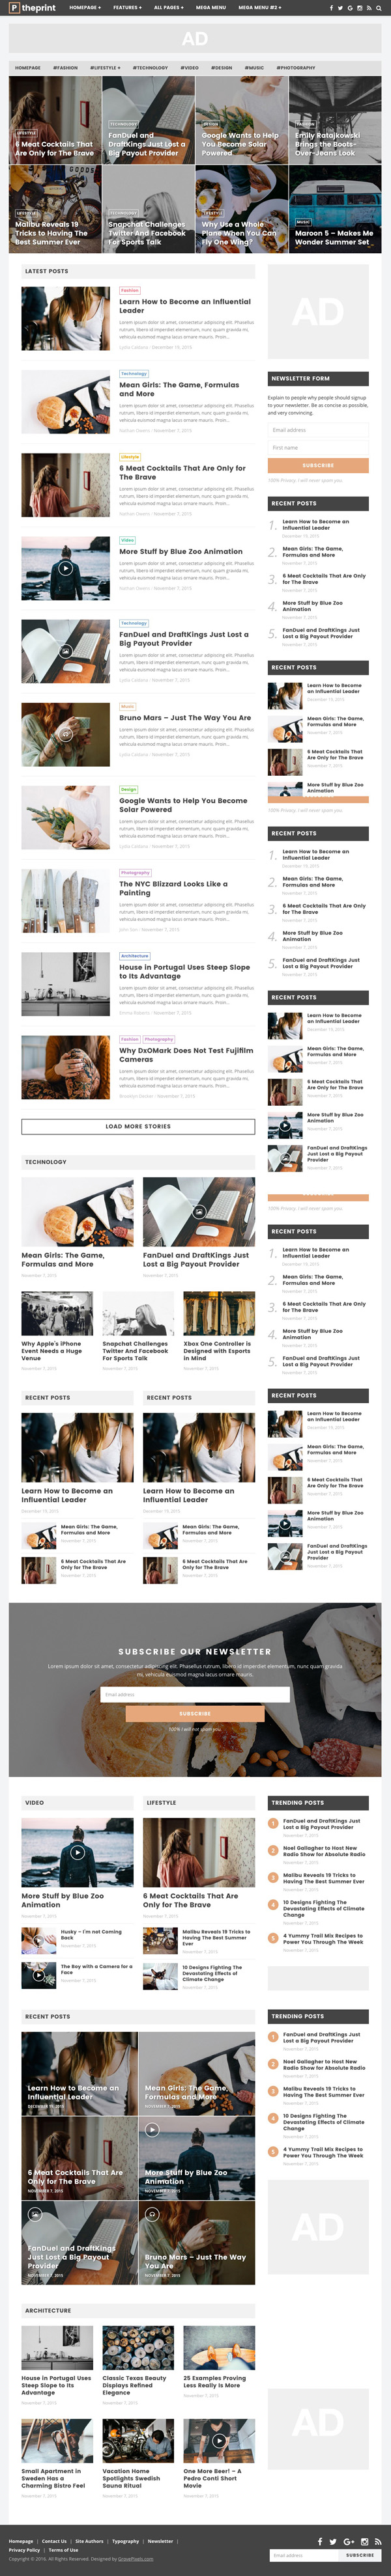 The Print - A Theme for Magazines and Simple Blogs